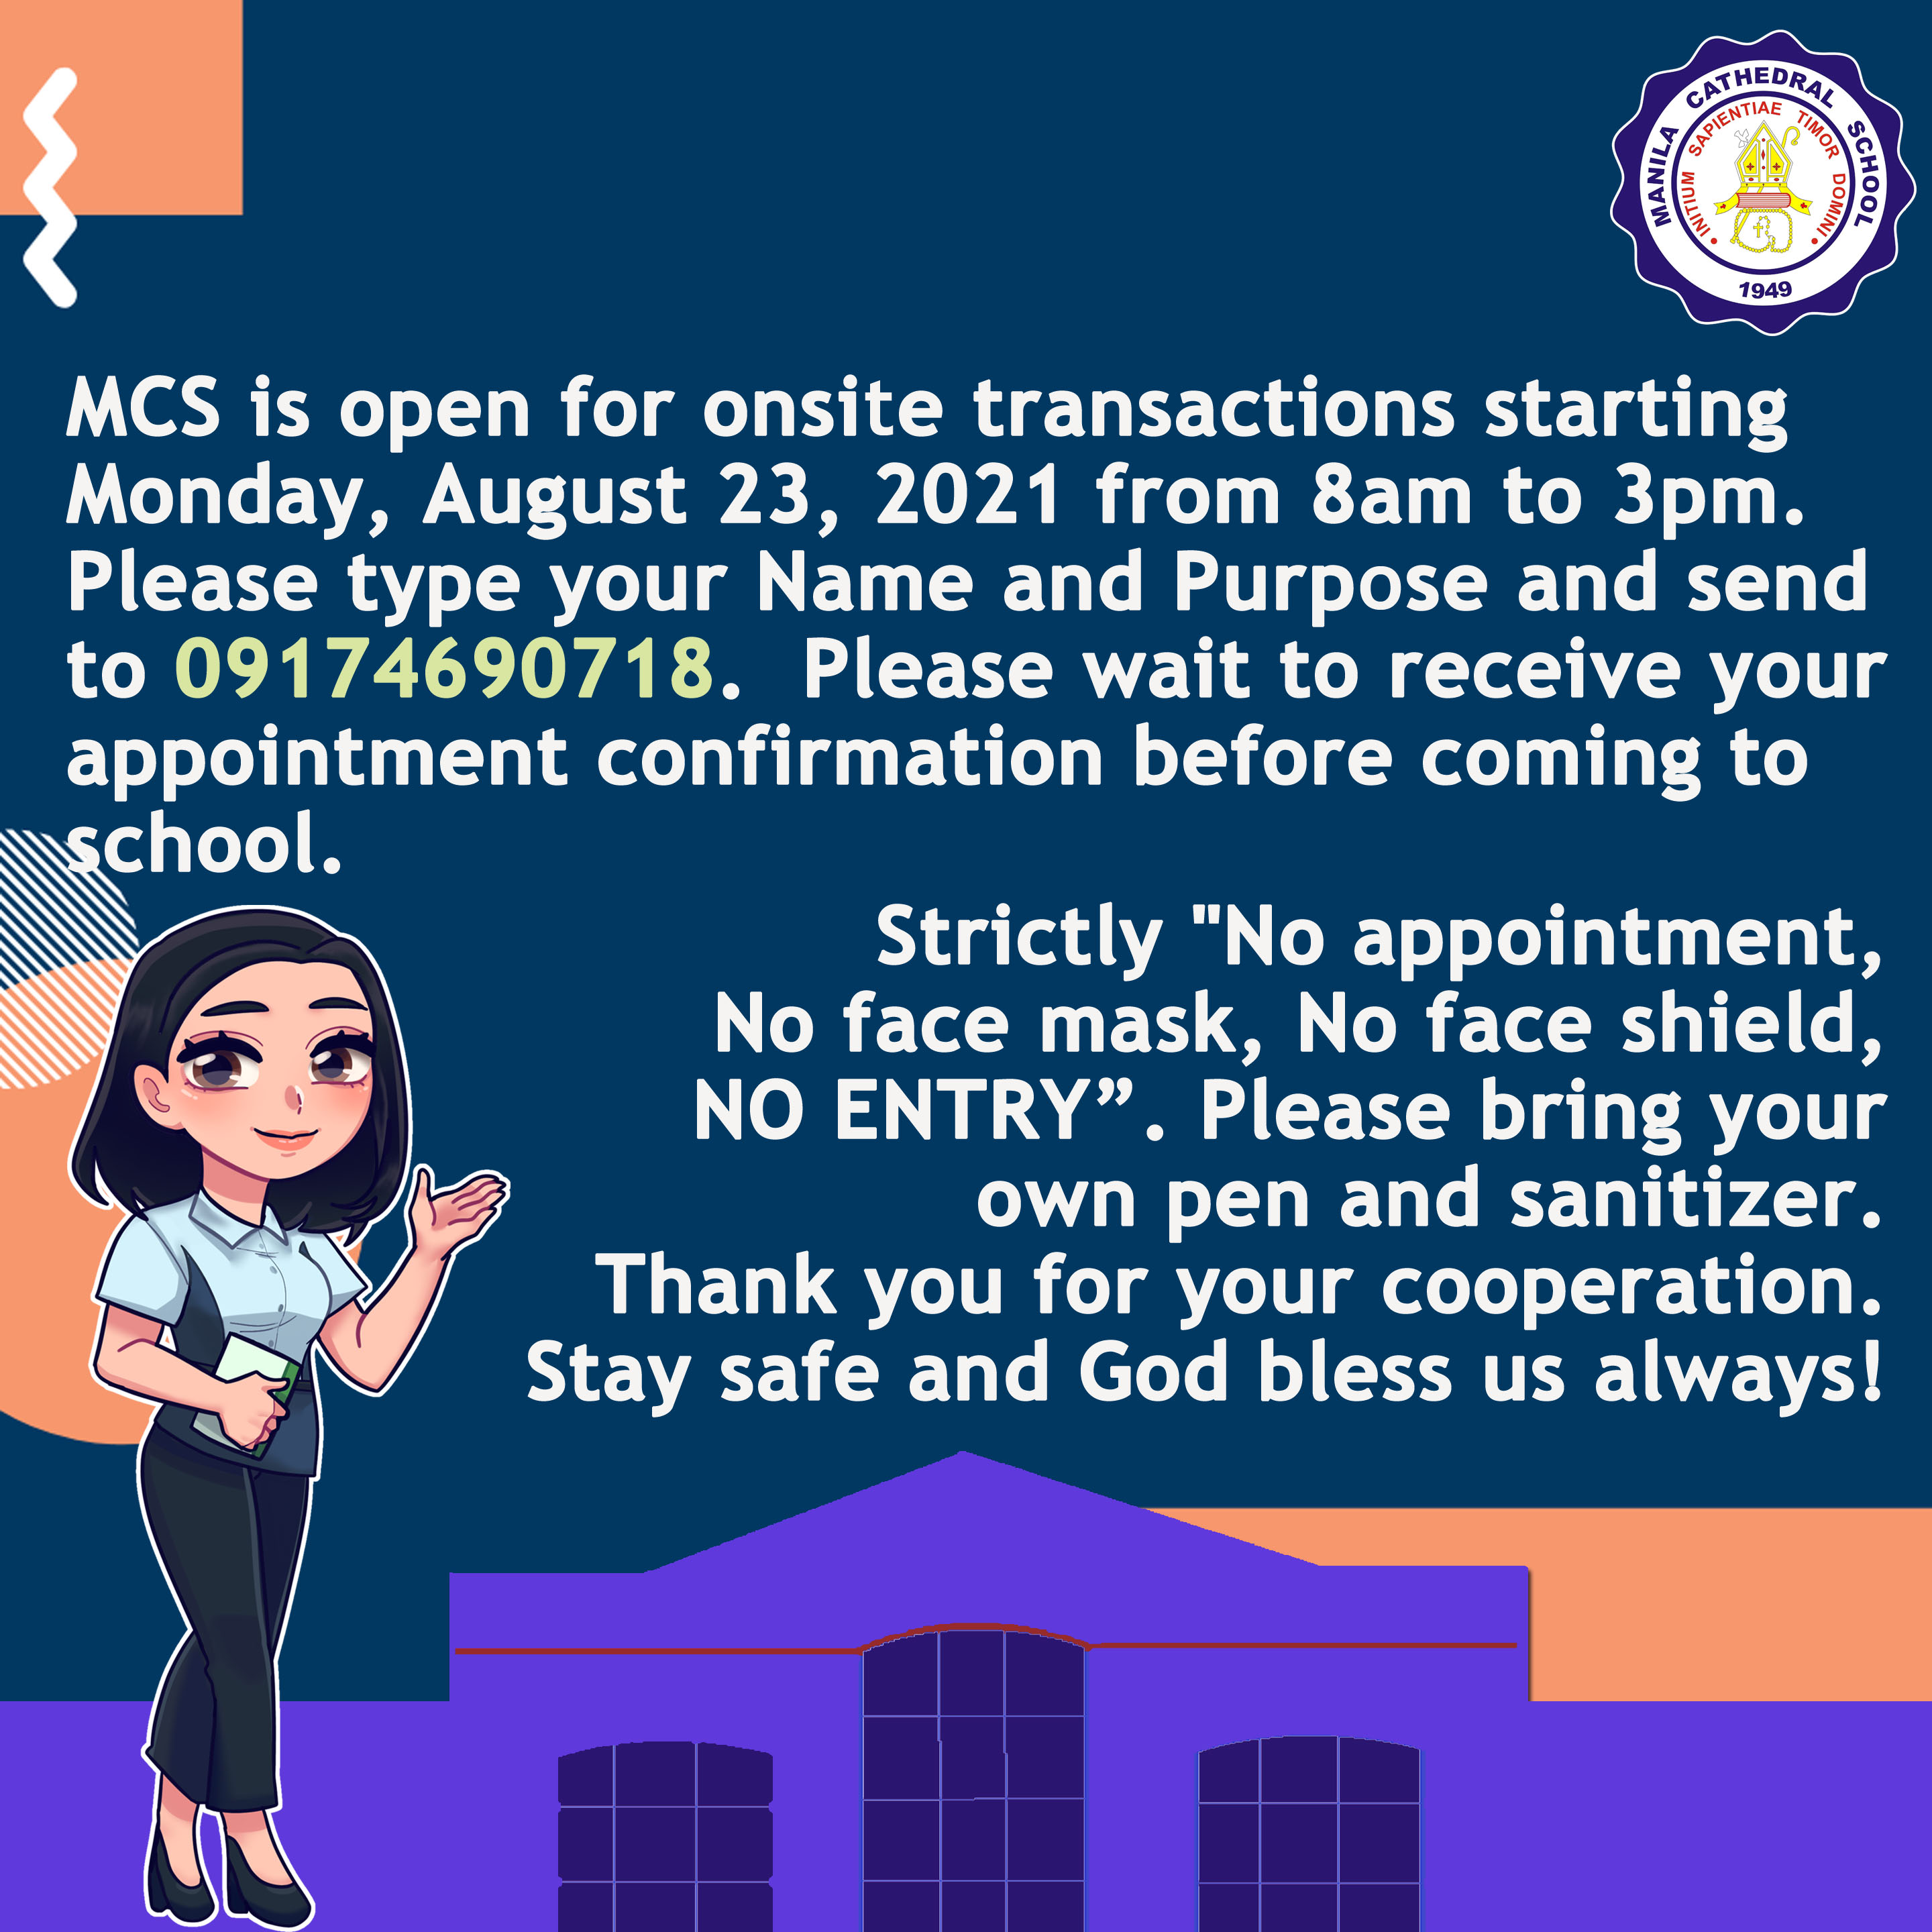 MCS is open for onsite transactions starting Monday, August 23, 2021 from 8am to 3pm. Please type your Name and Purpose and send to 09174690718.